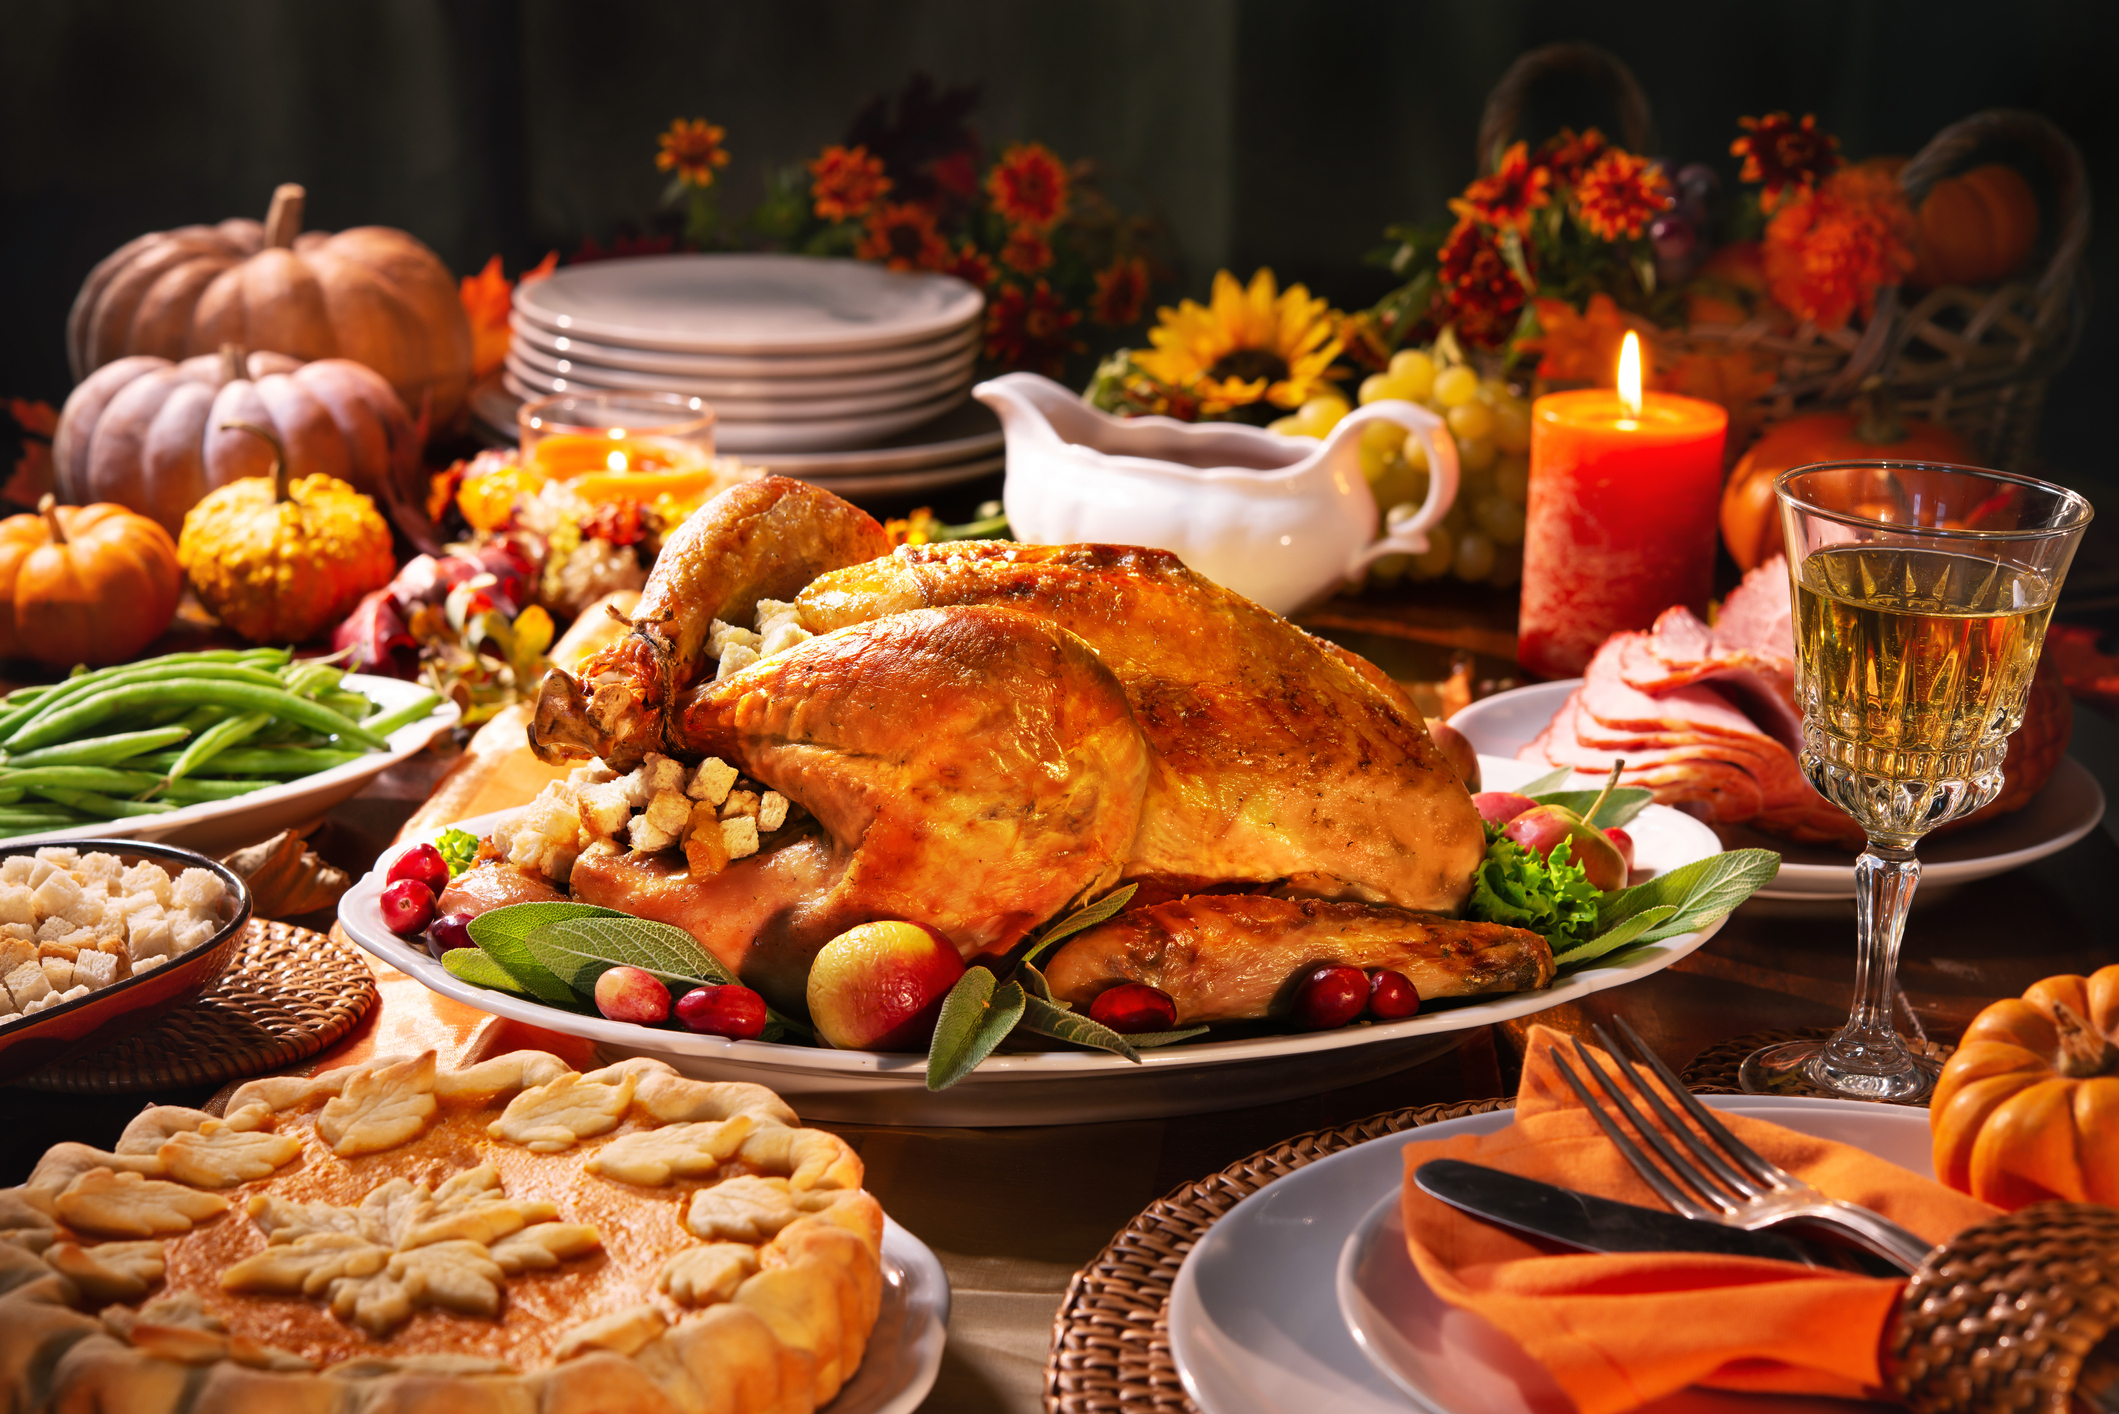 Happy Canadian Thanksgiving! How the Country Celebrates the Holiday Differently From the U.S.